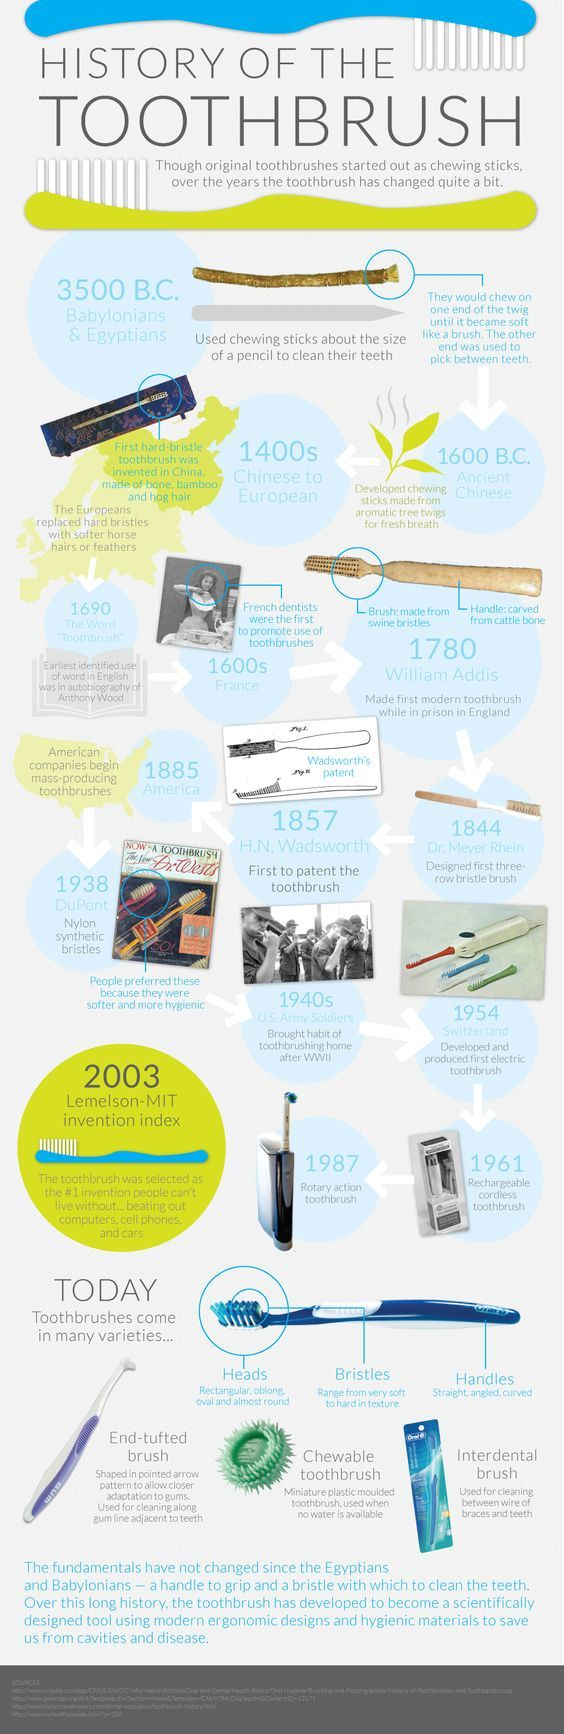 History of the Toothbrush: